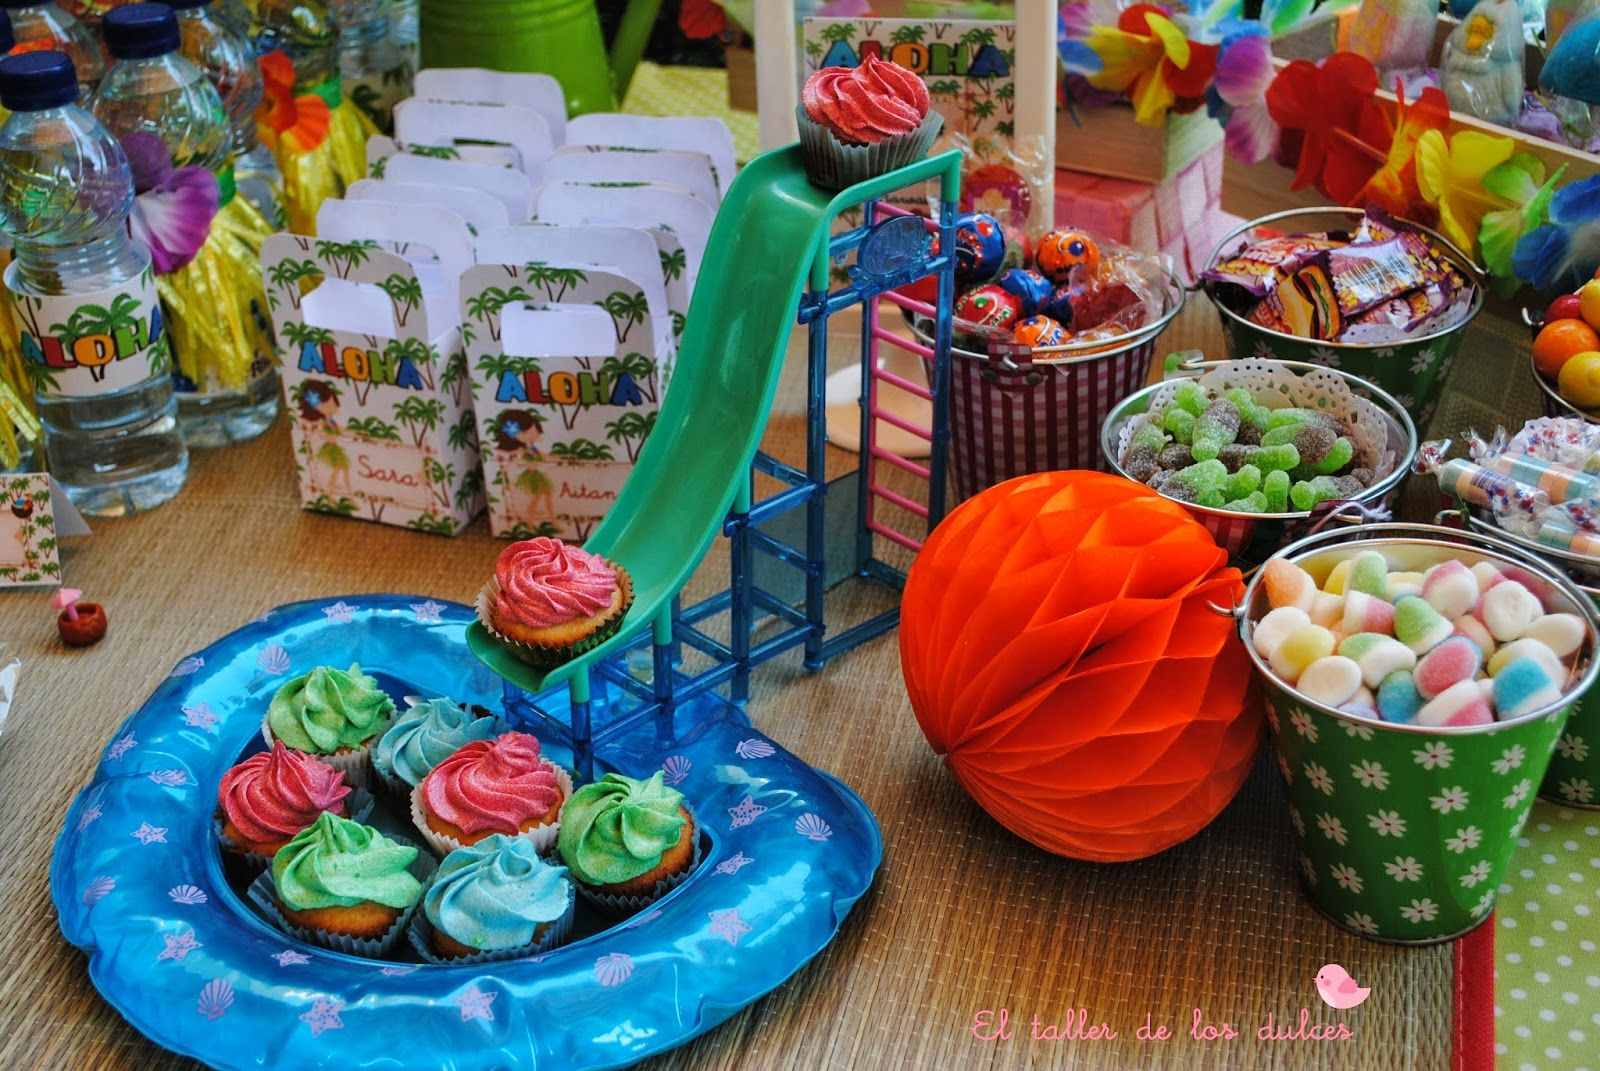 Party Piscina Cupcake De Chapuzón En La Piscina Ideas Para Fiestas